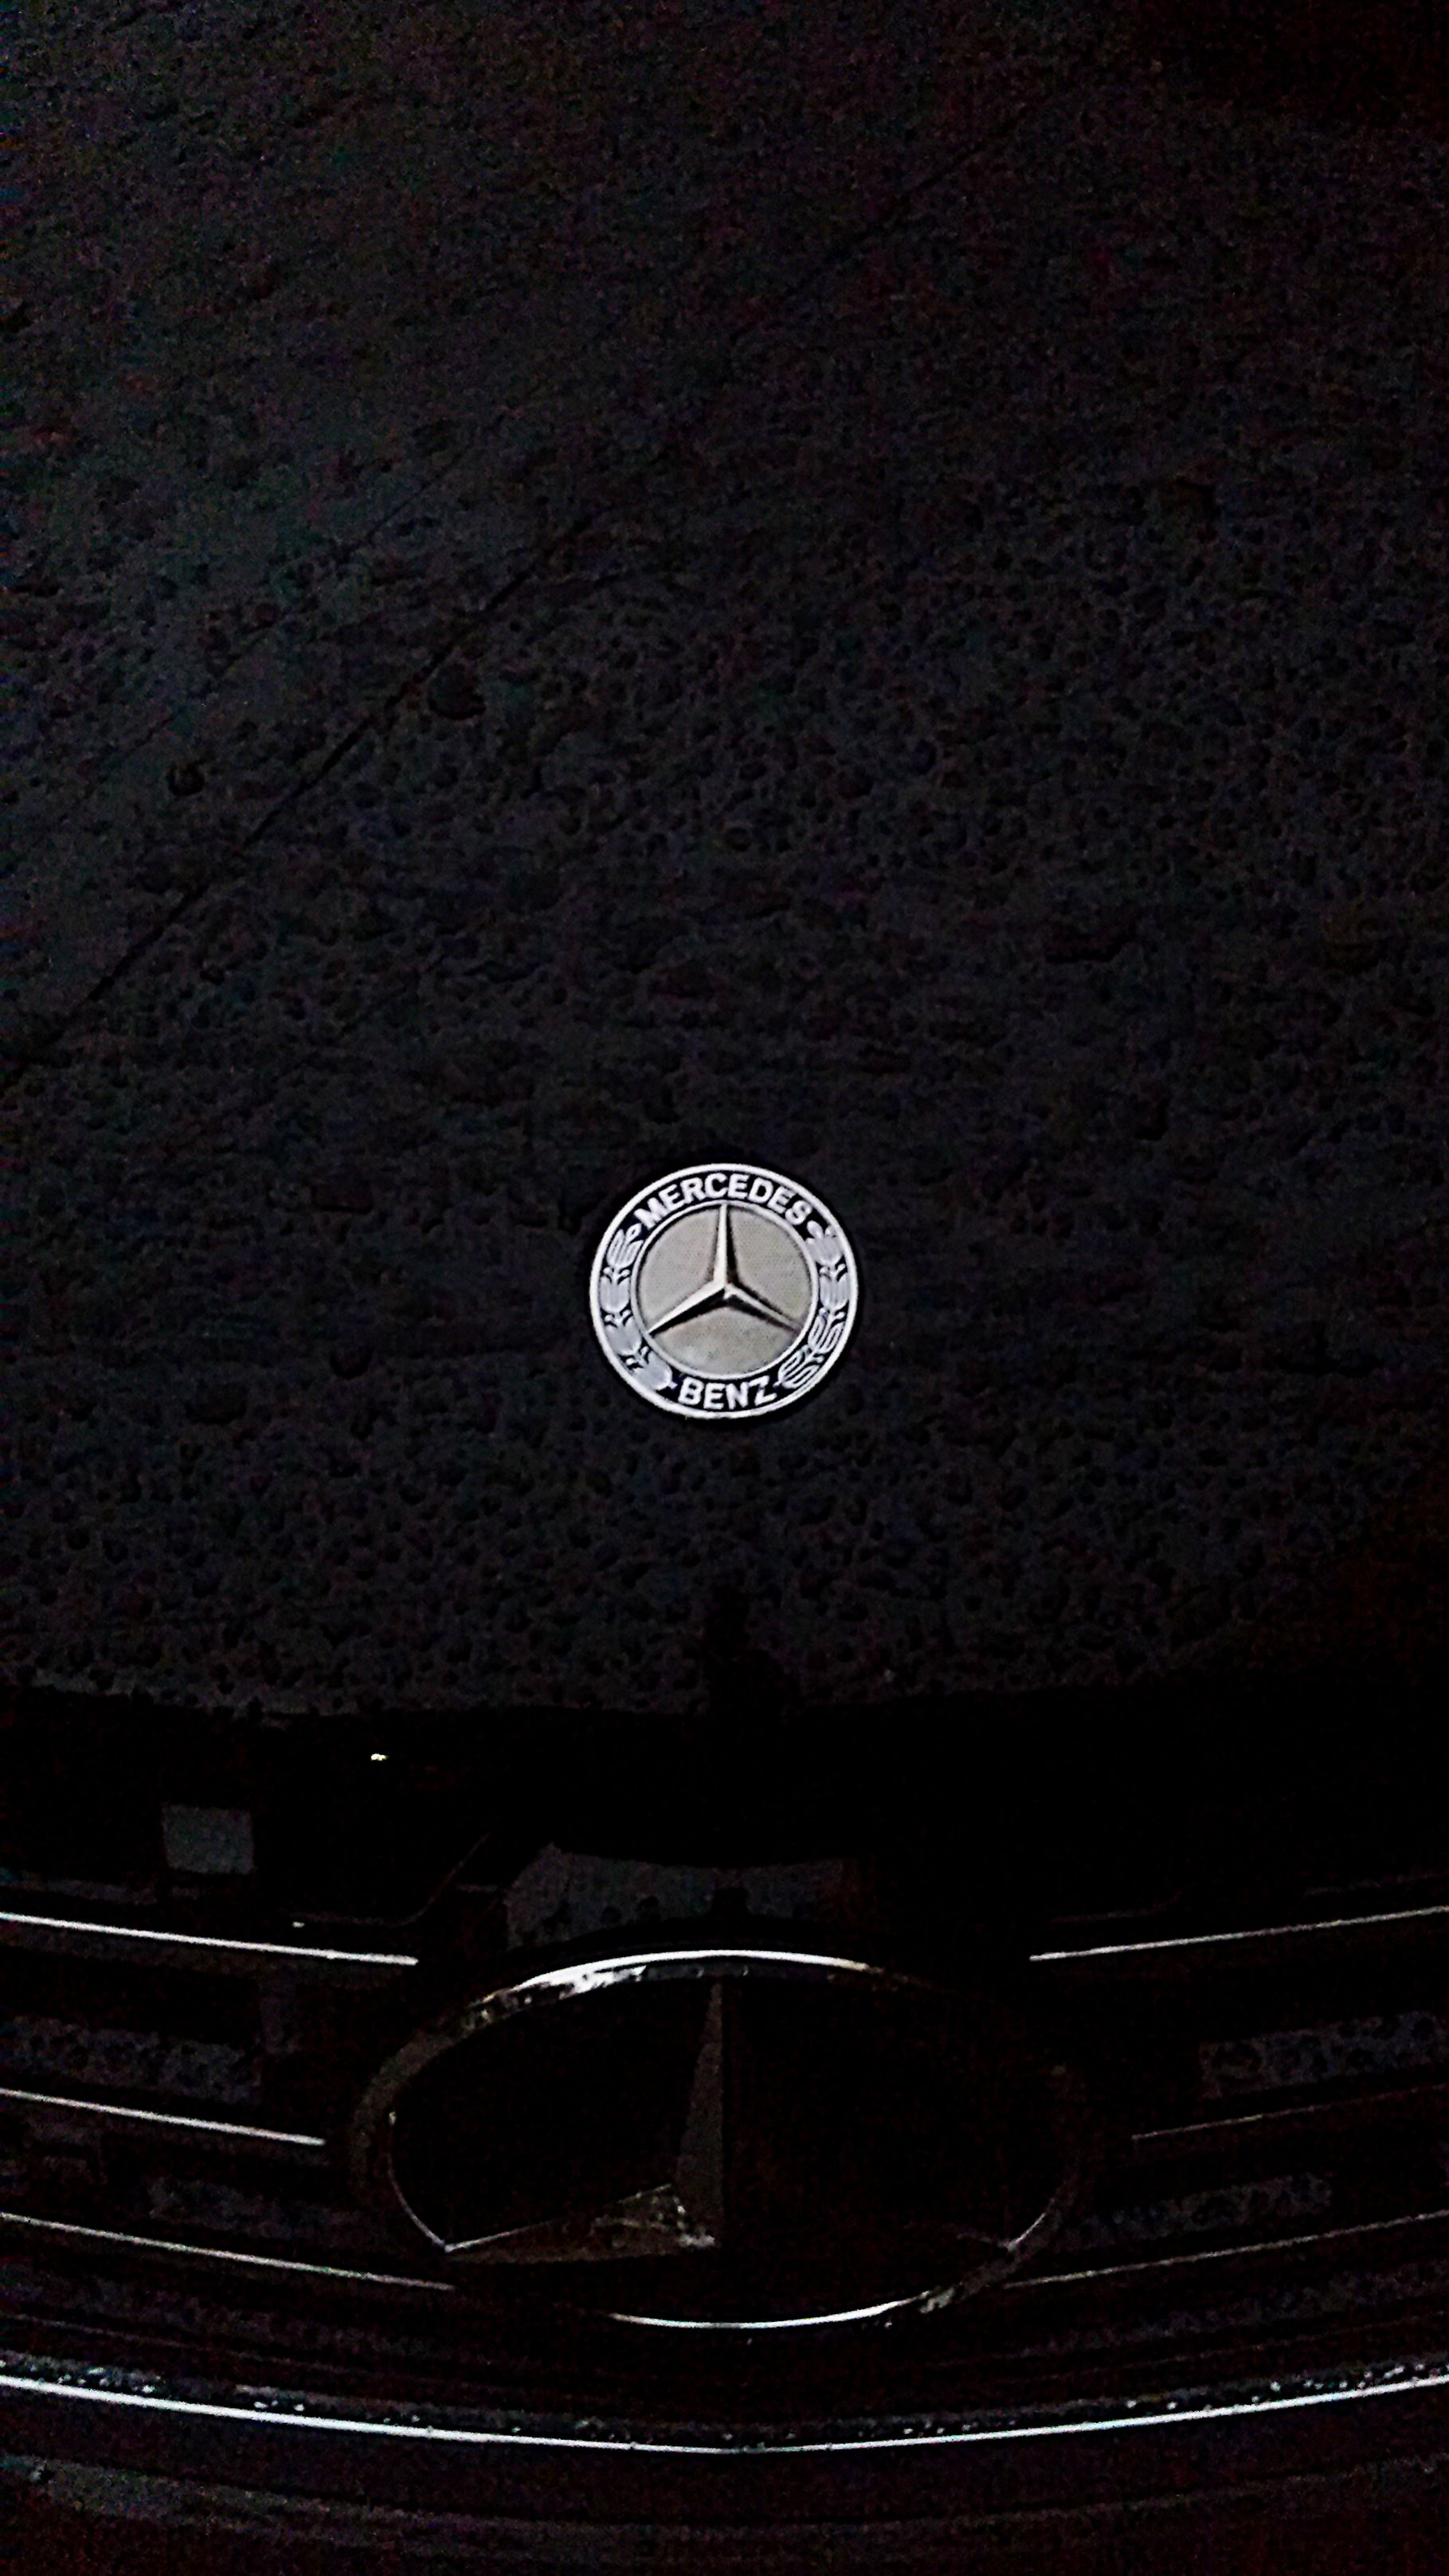 Mercedes benz logo wallpapers pic mch085524 dzbc download voltagebd Gallery